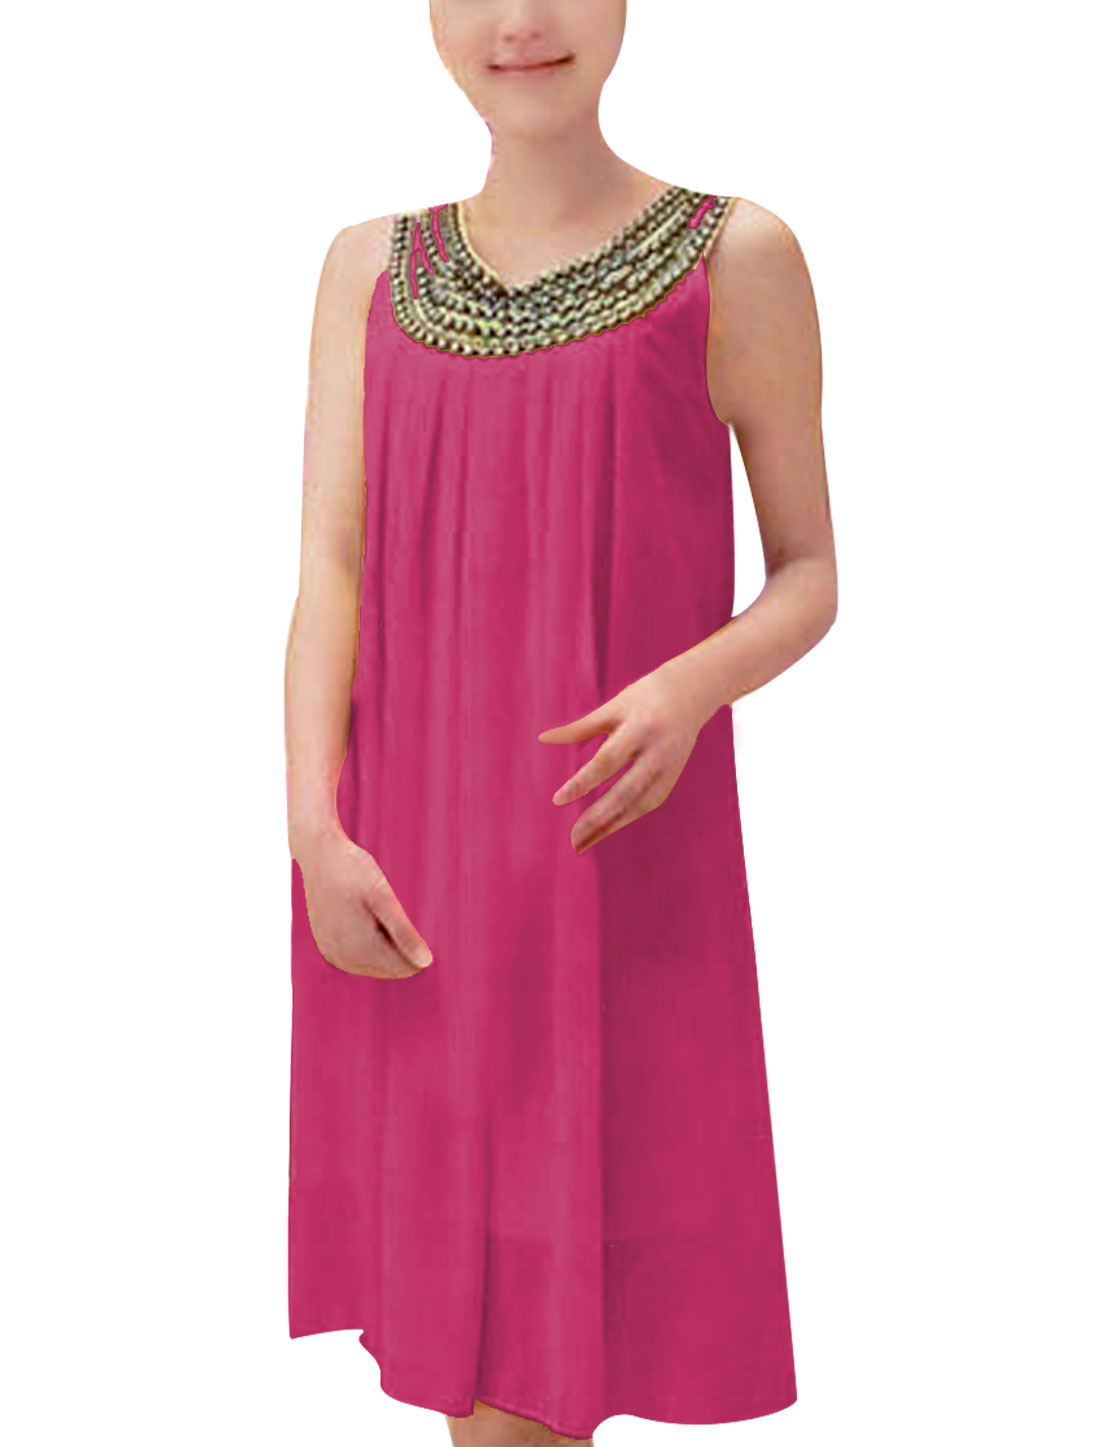 Ladies Round Neck Rivets Decor Chiffon Solid Color Dress Fuchsia S